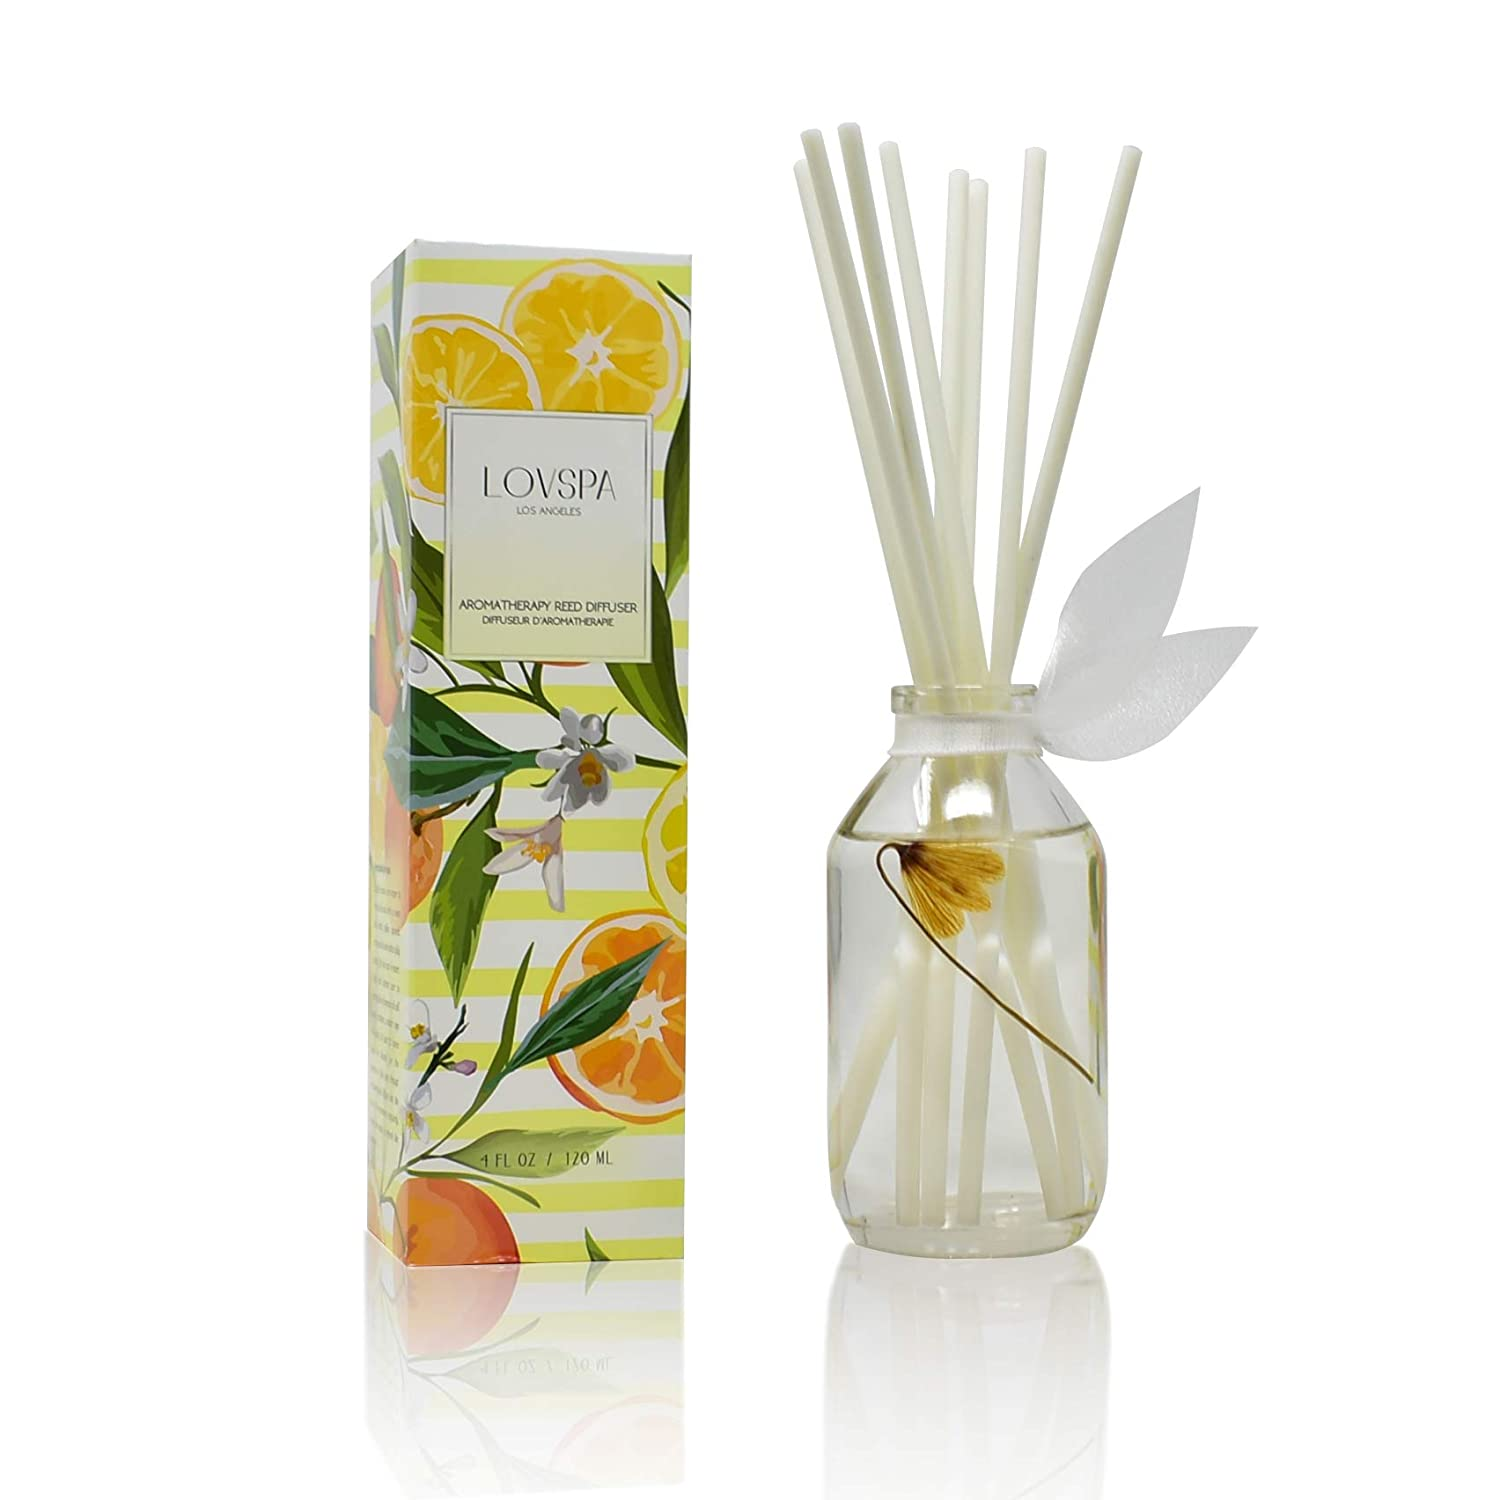 LOVSPA Coastal Citrus Scented Reed Diffuser Oil and Sticks Gift Set   Air Freshener for Bathroom, Bedroom Kitchen or Living Room   Best Housewarming Gift Idea for Women and Men   Made in The USA